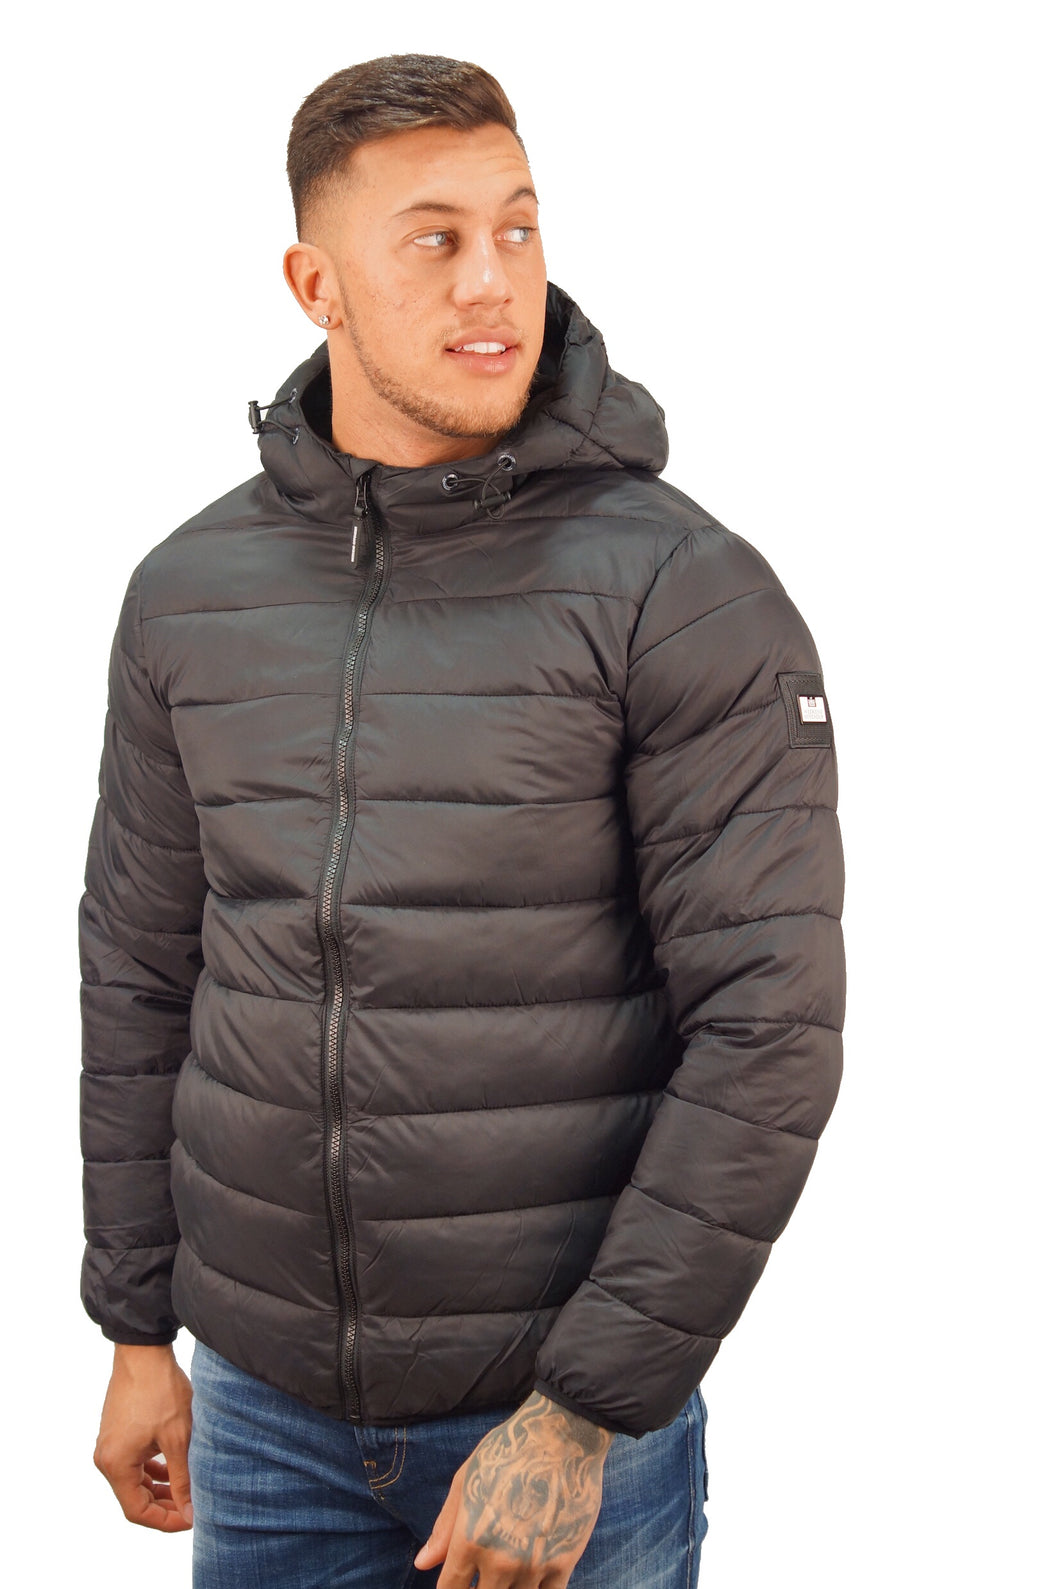 Weekend Offender FRAZIER PUFFER JACKET Black